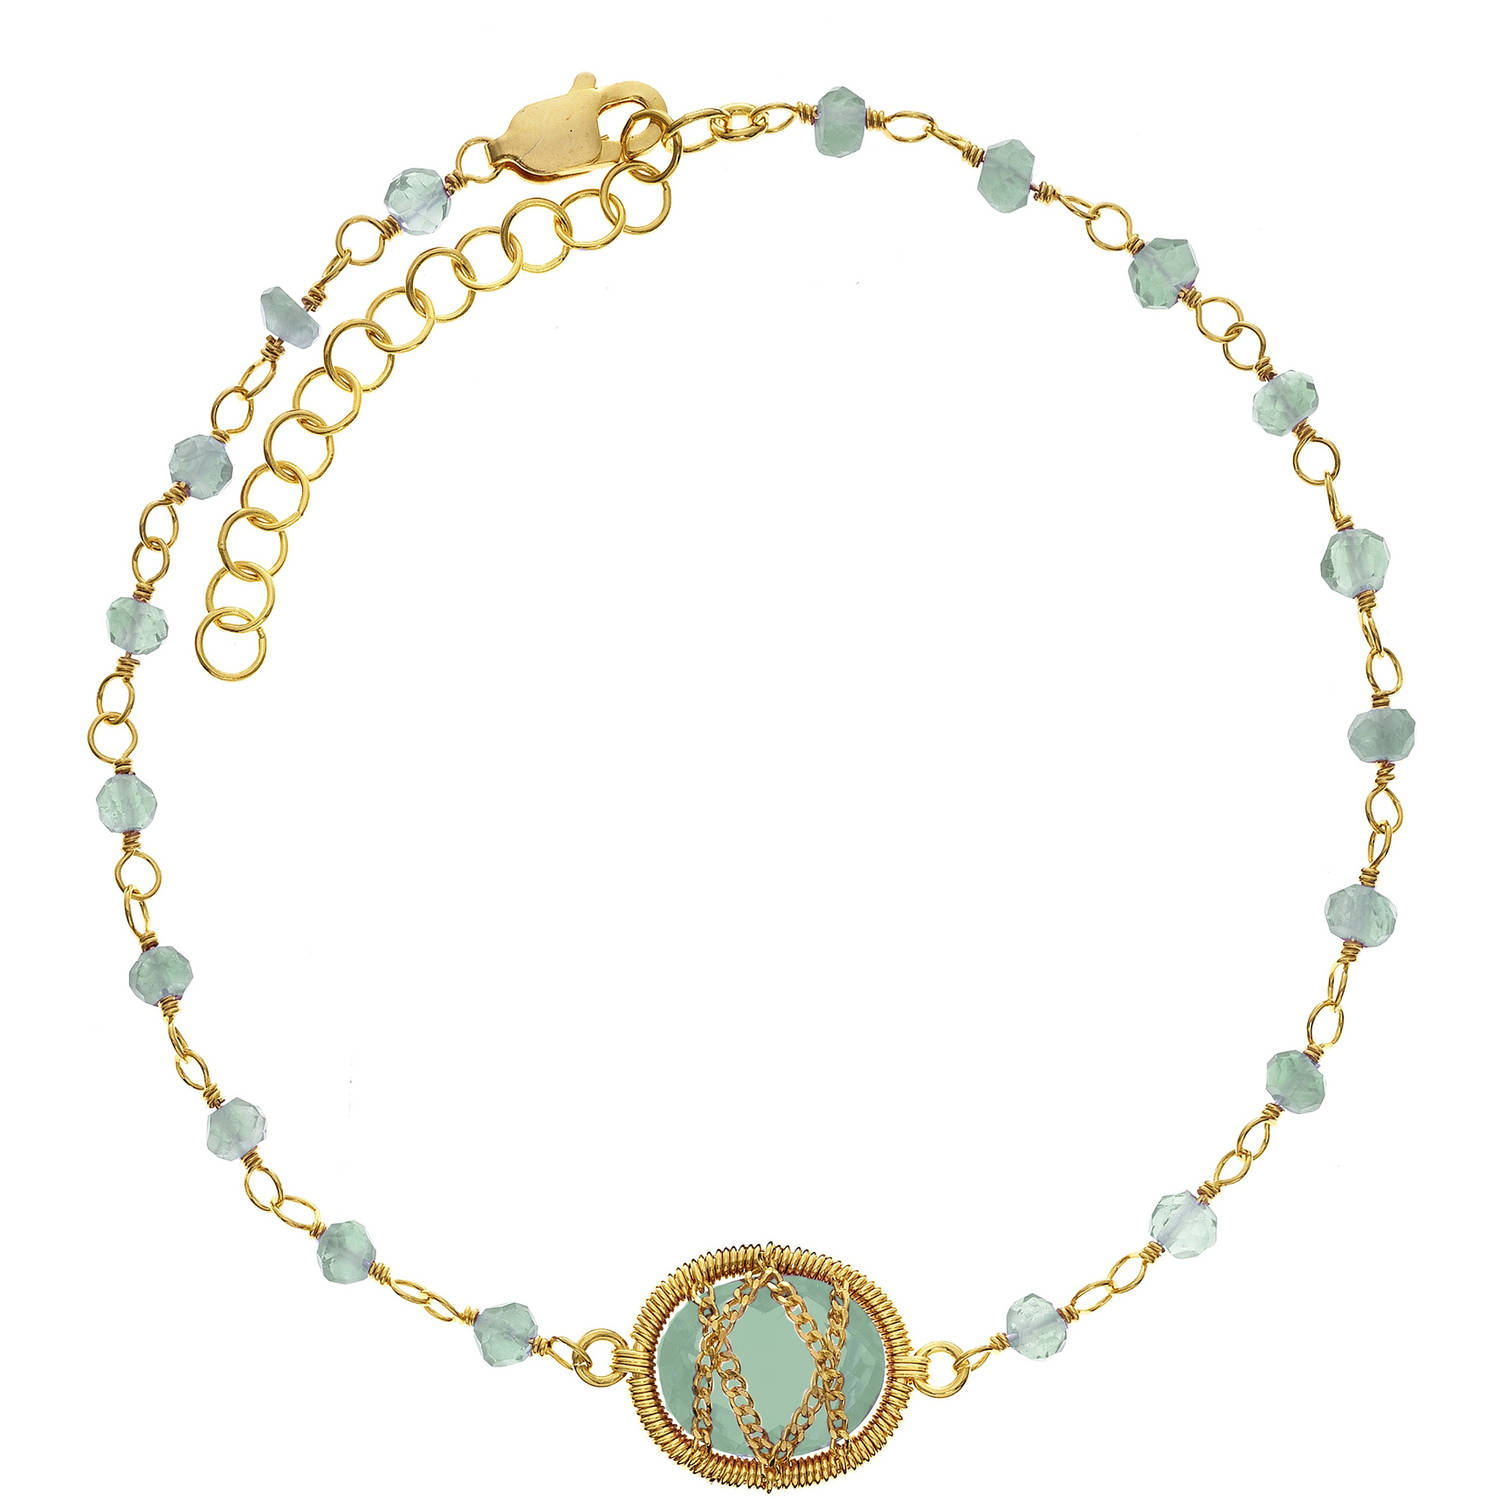 5th & Main 18kt Gold over Sterling Silver Hand-Wrapped Beaded Chalcedony Stone Bracelet by Generic